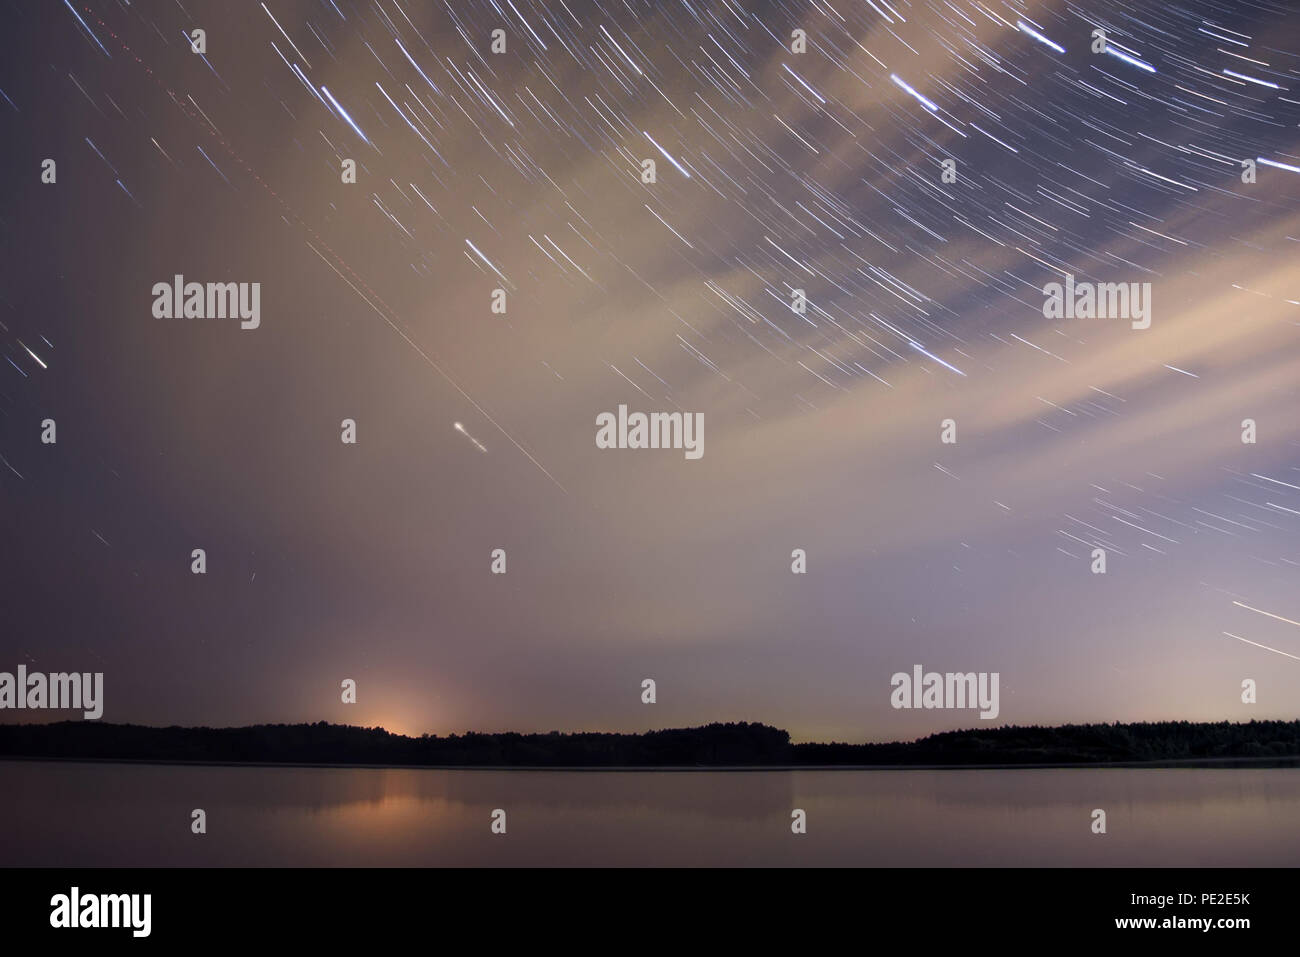 Amazing night landscape with a forest reflected in the smooth water of the river, clouds and stars in the form of tracks on a dark blue sky Stock Photo